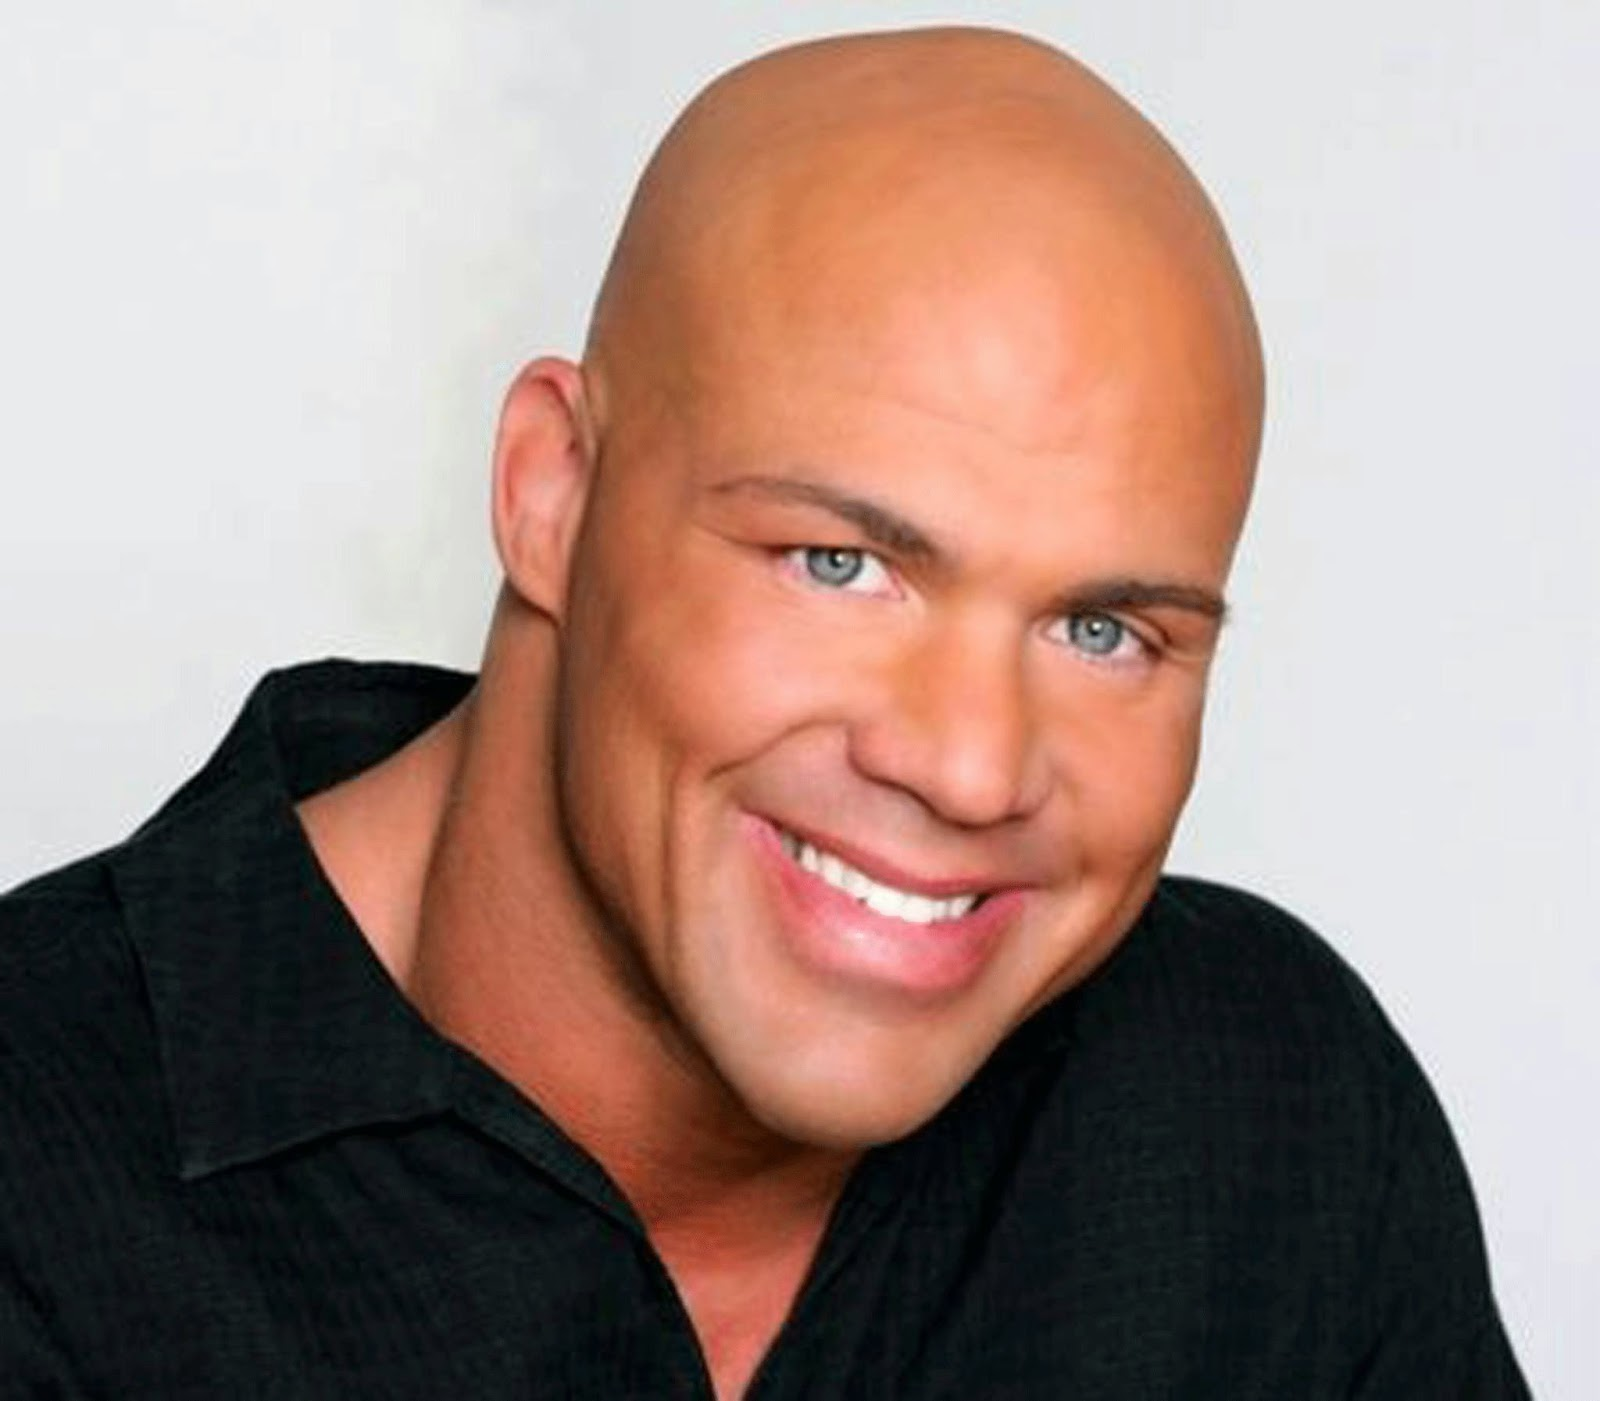 Midweek wrestle chat october 2014 - Pictures of kurt angle ...